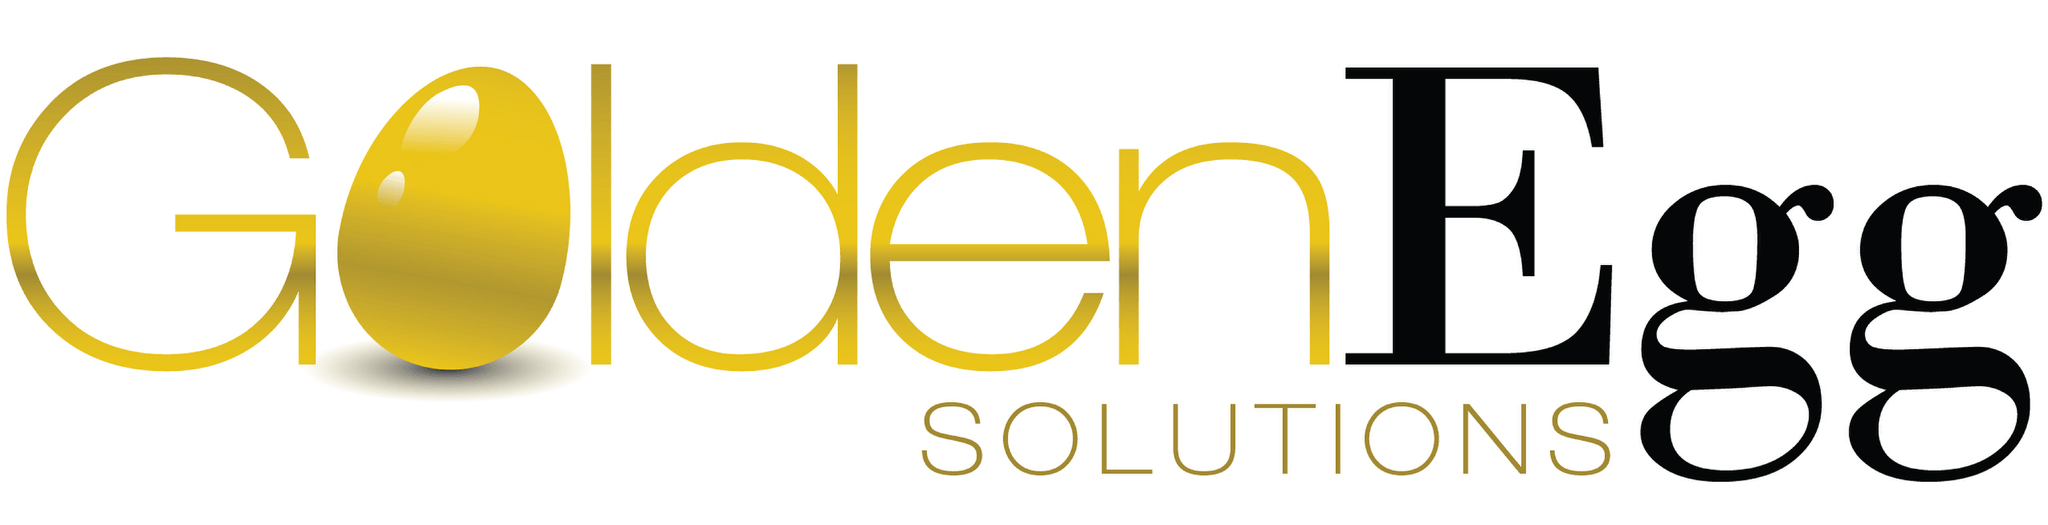 Golden Egg Solutions